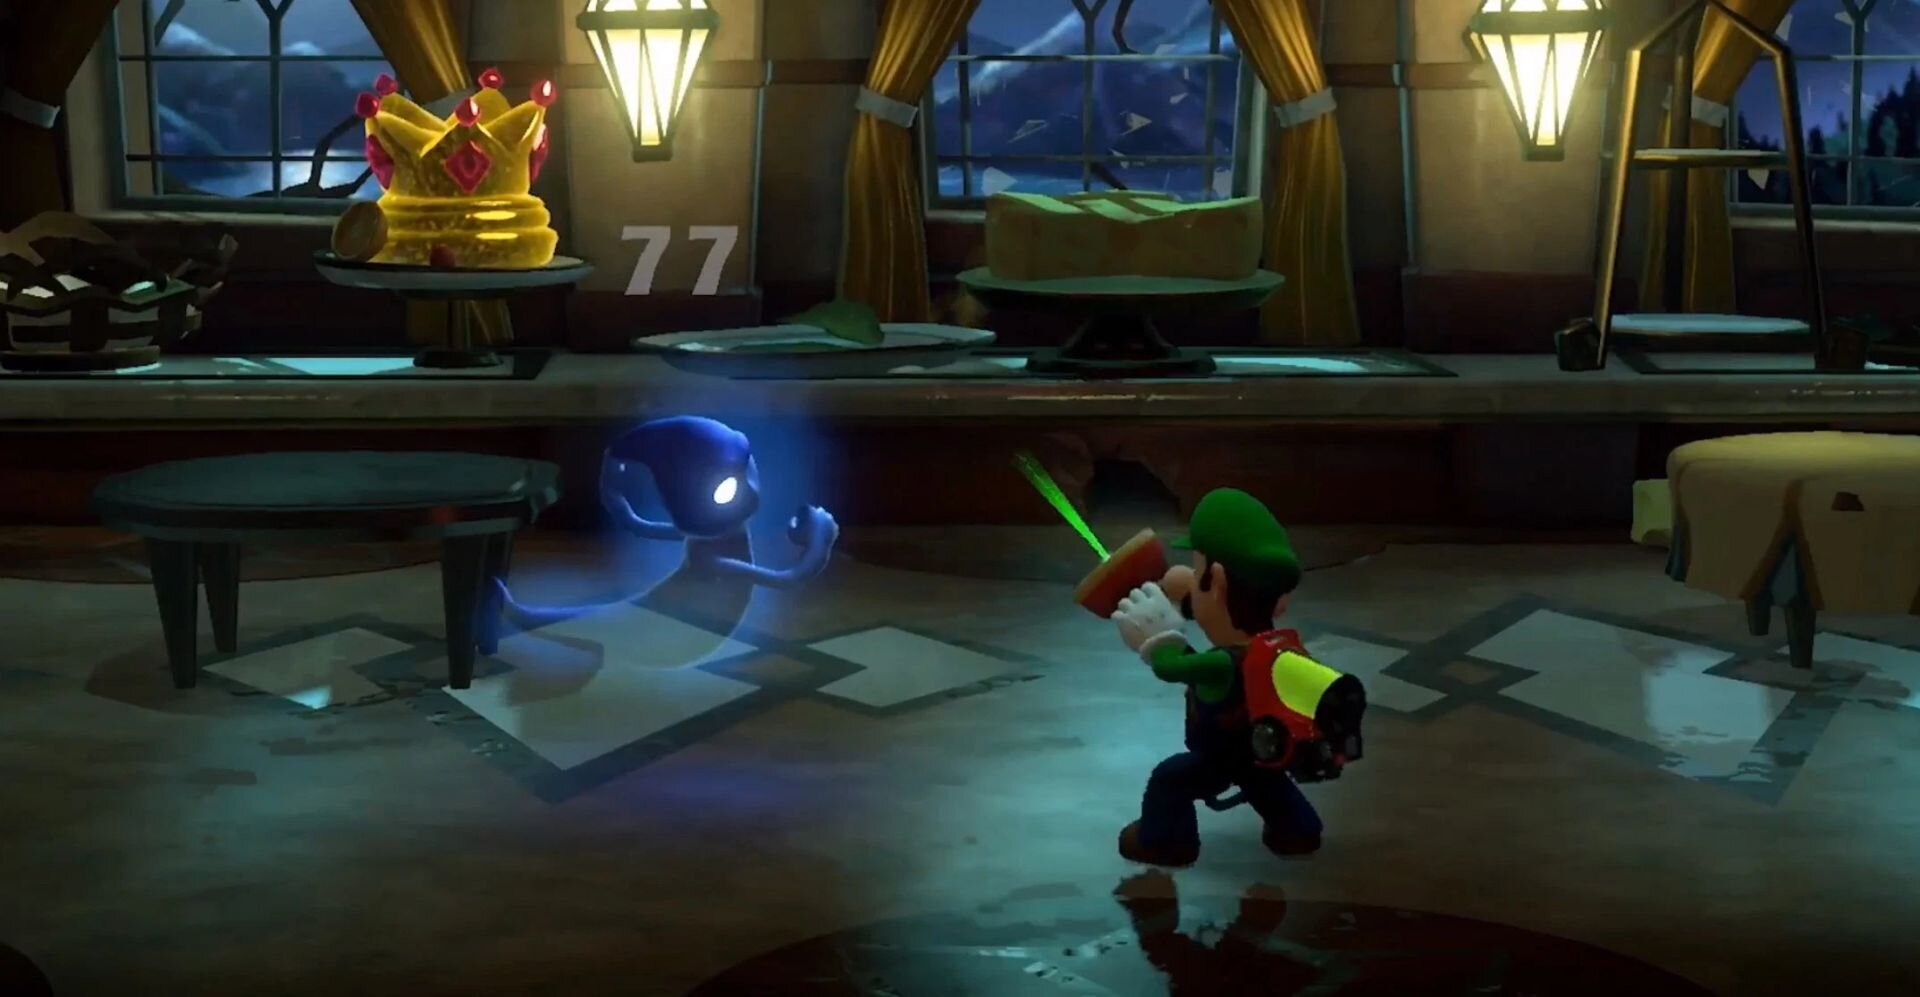 Luigi S Mansion 3 Is Quite A Bit Of Fun And The Multiplayer